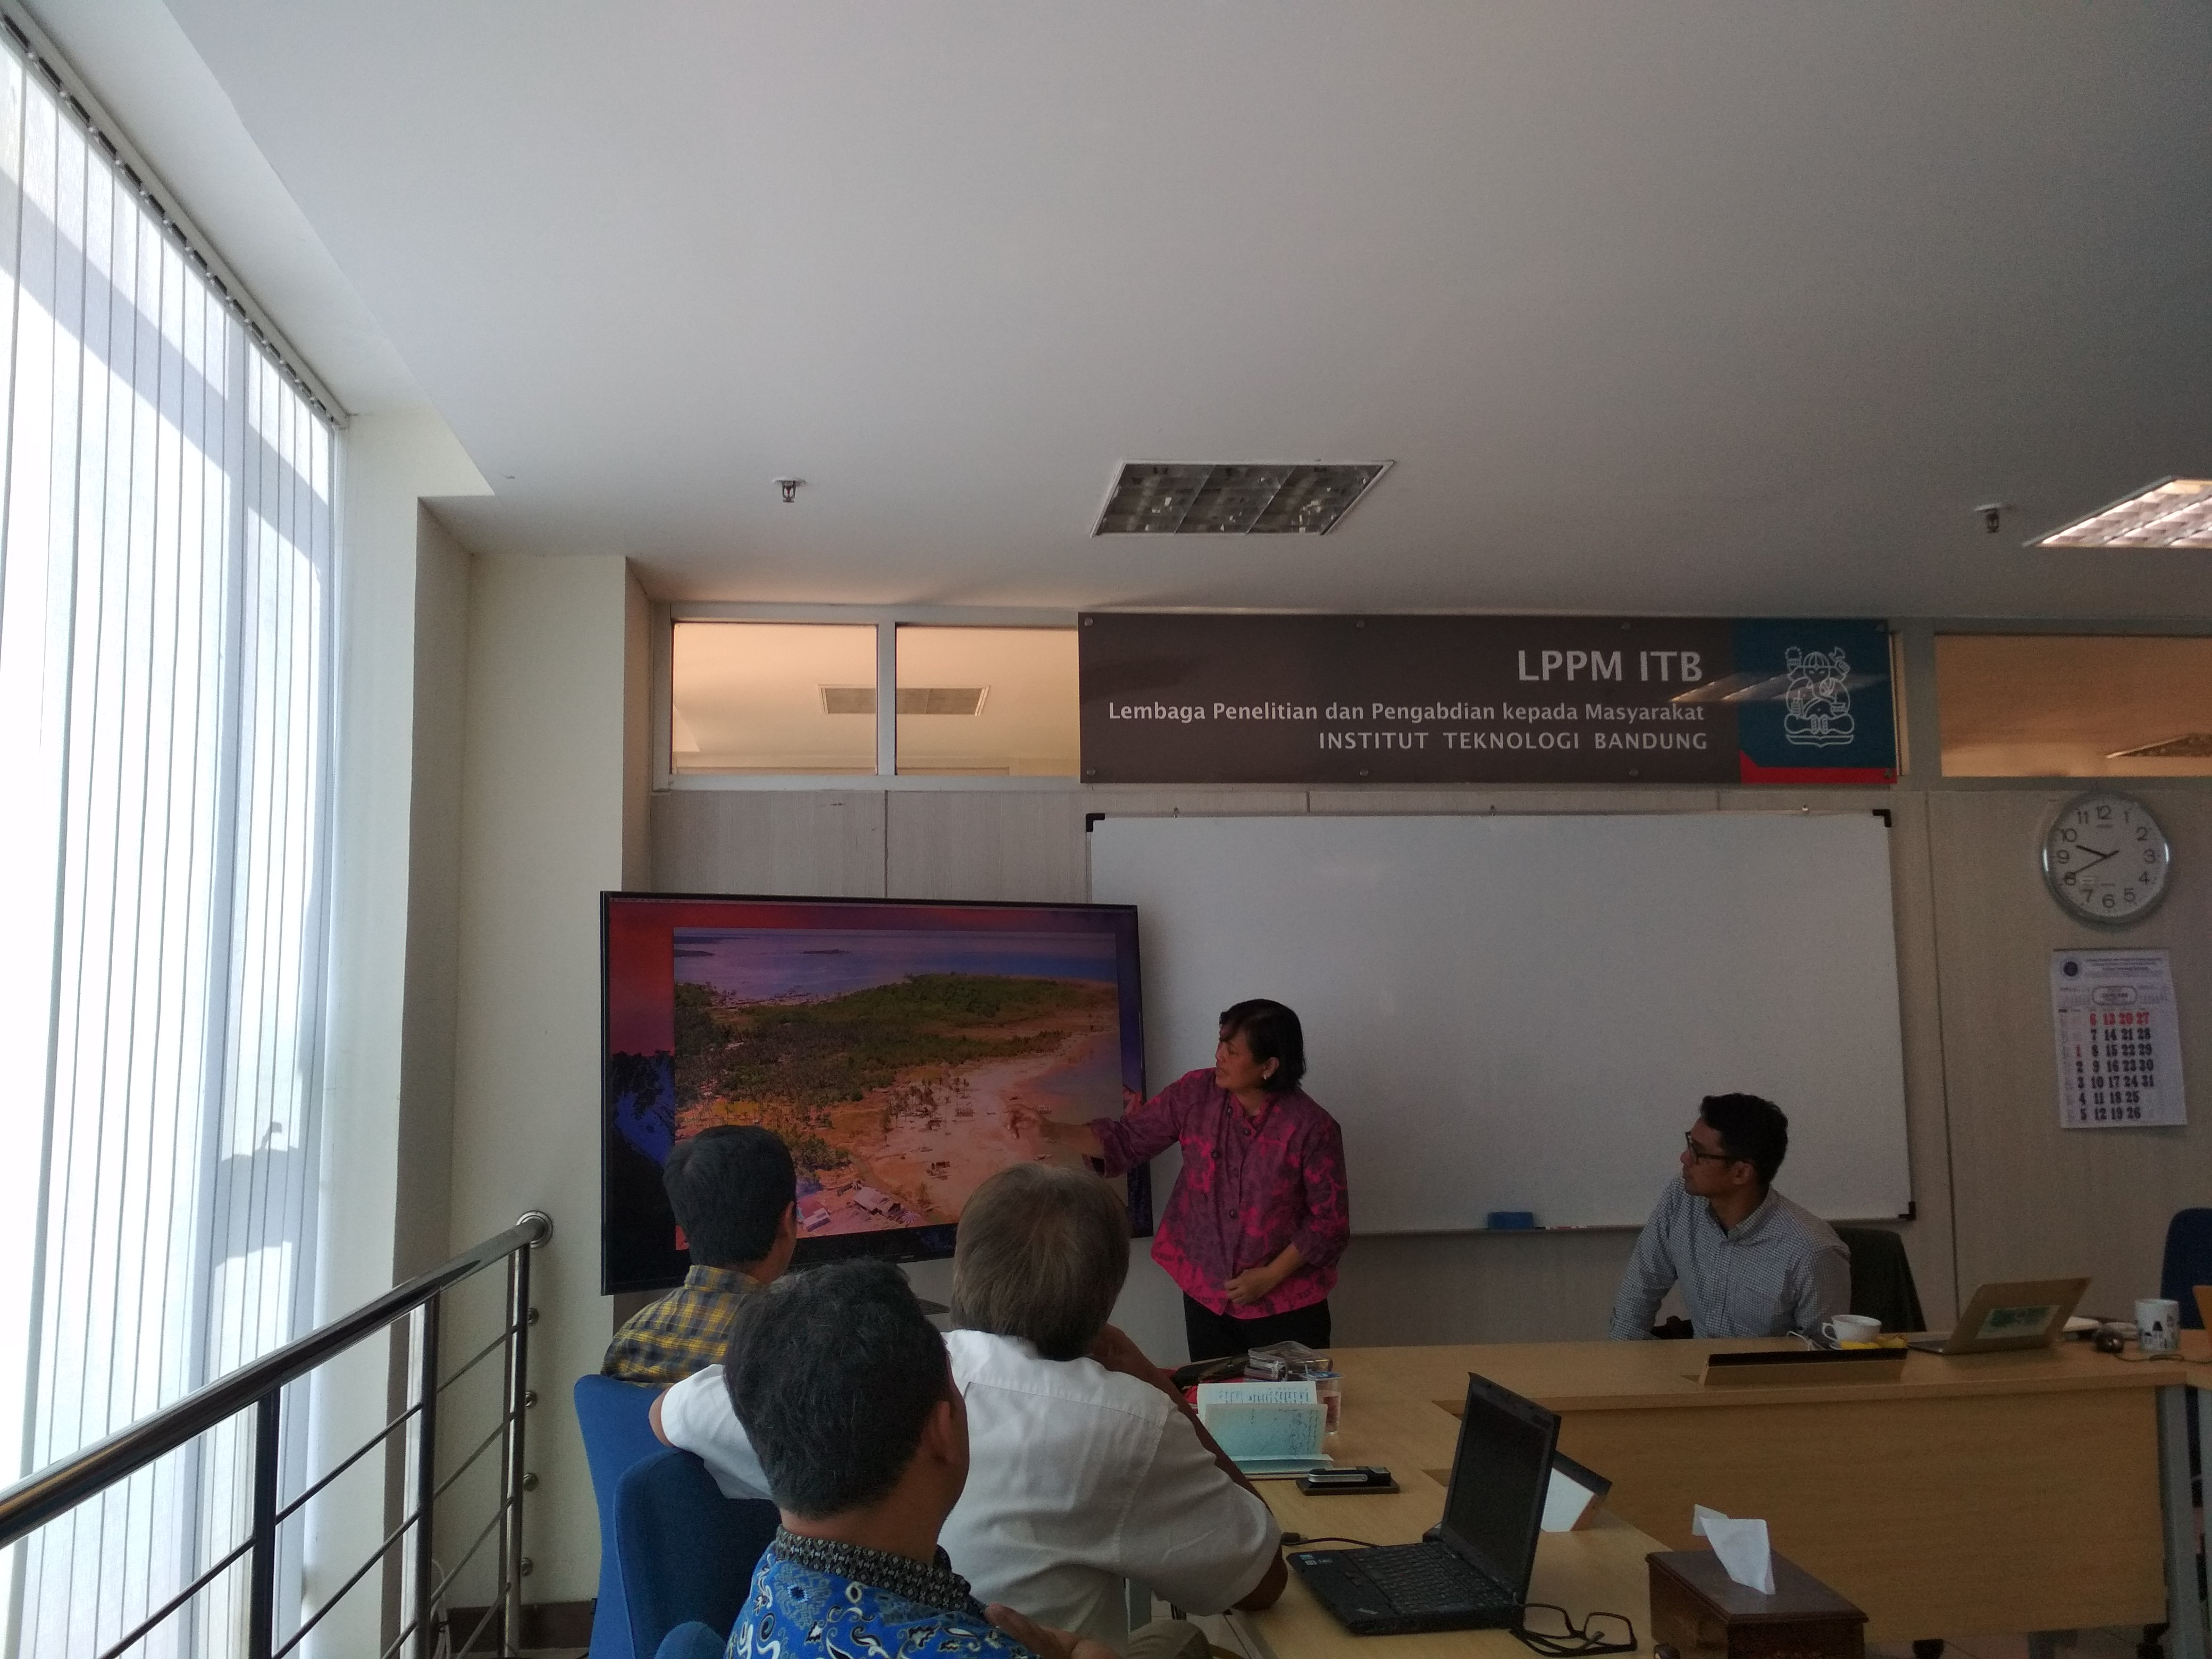 lppm-itb-prepares-post-disaster-rehabilitation-and-reconstruction-program-in-banten-and-lampung